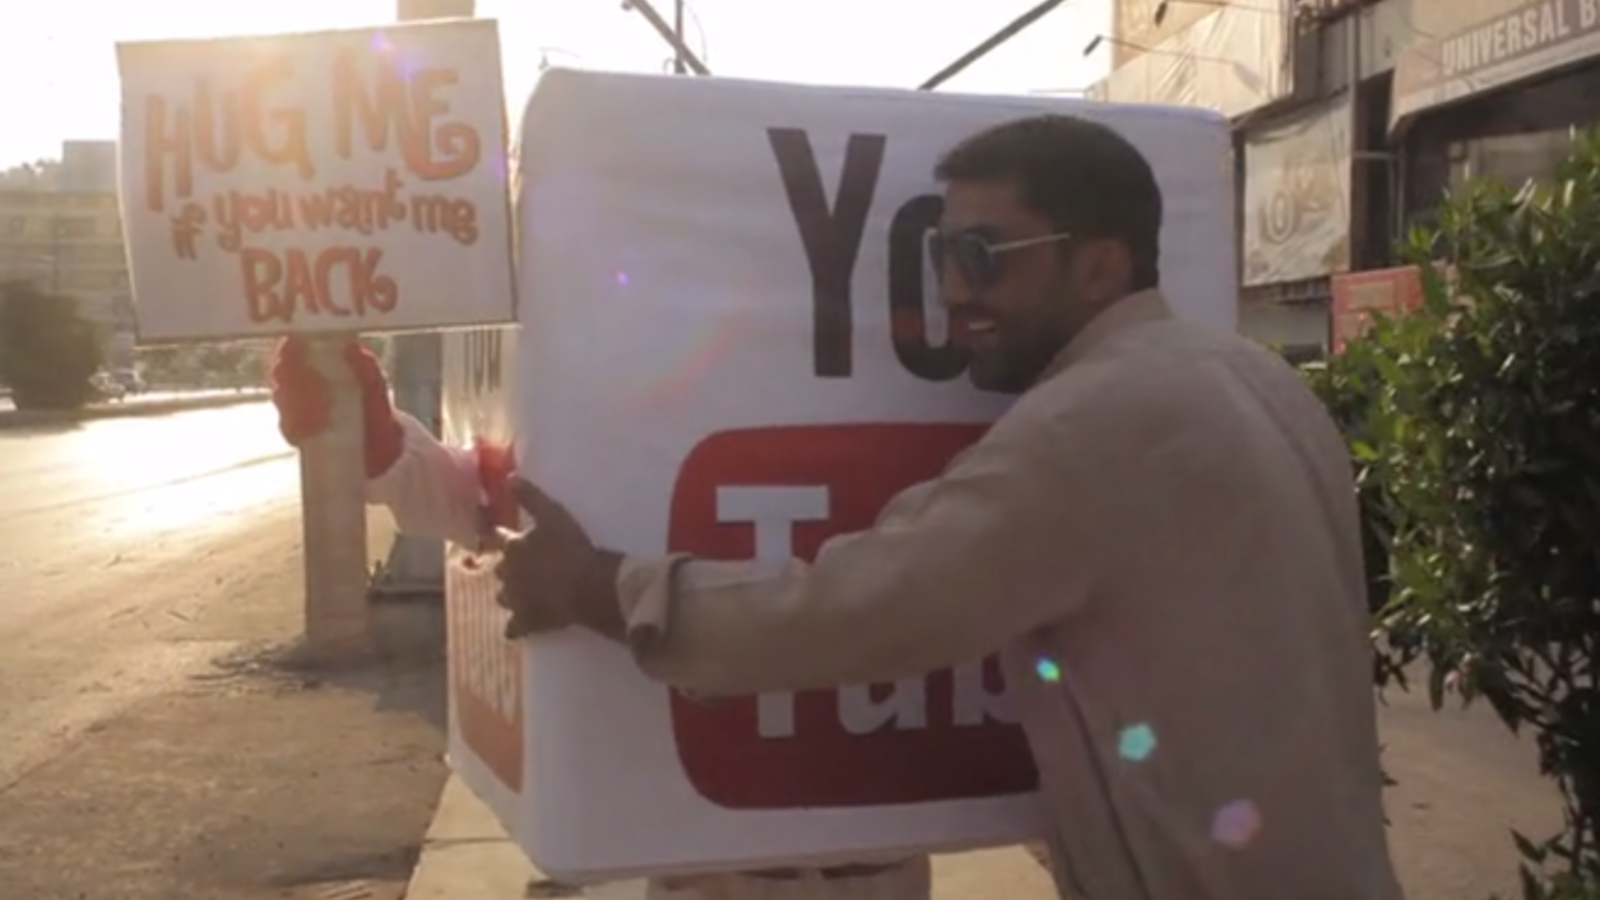 A Pakistani YouTube Hug campaign is afoot. (YouTube)